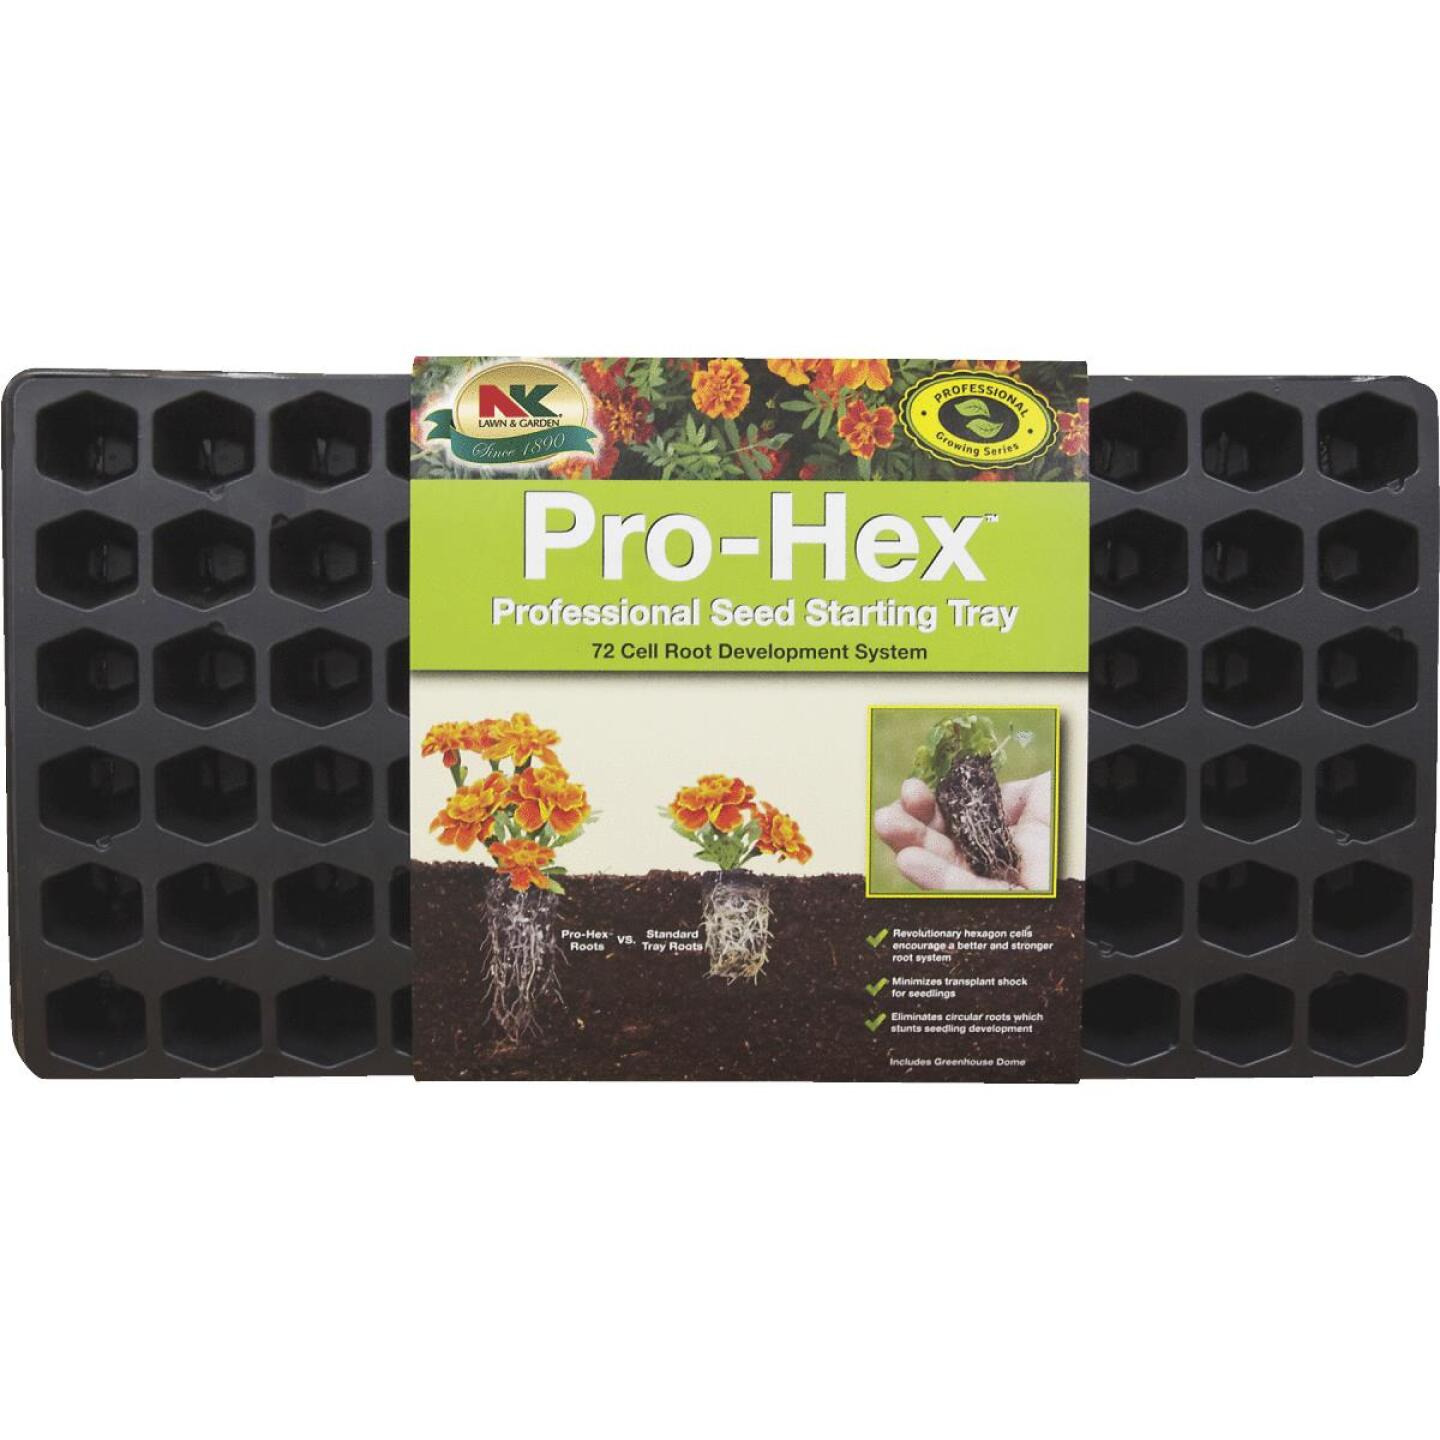 NK 72-Cell 11 In. W. x 22 In. L. Seed Starter Kit Image 1